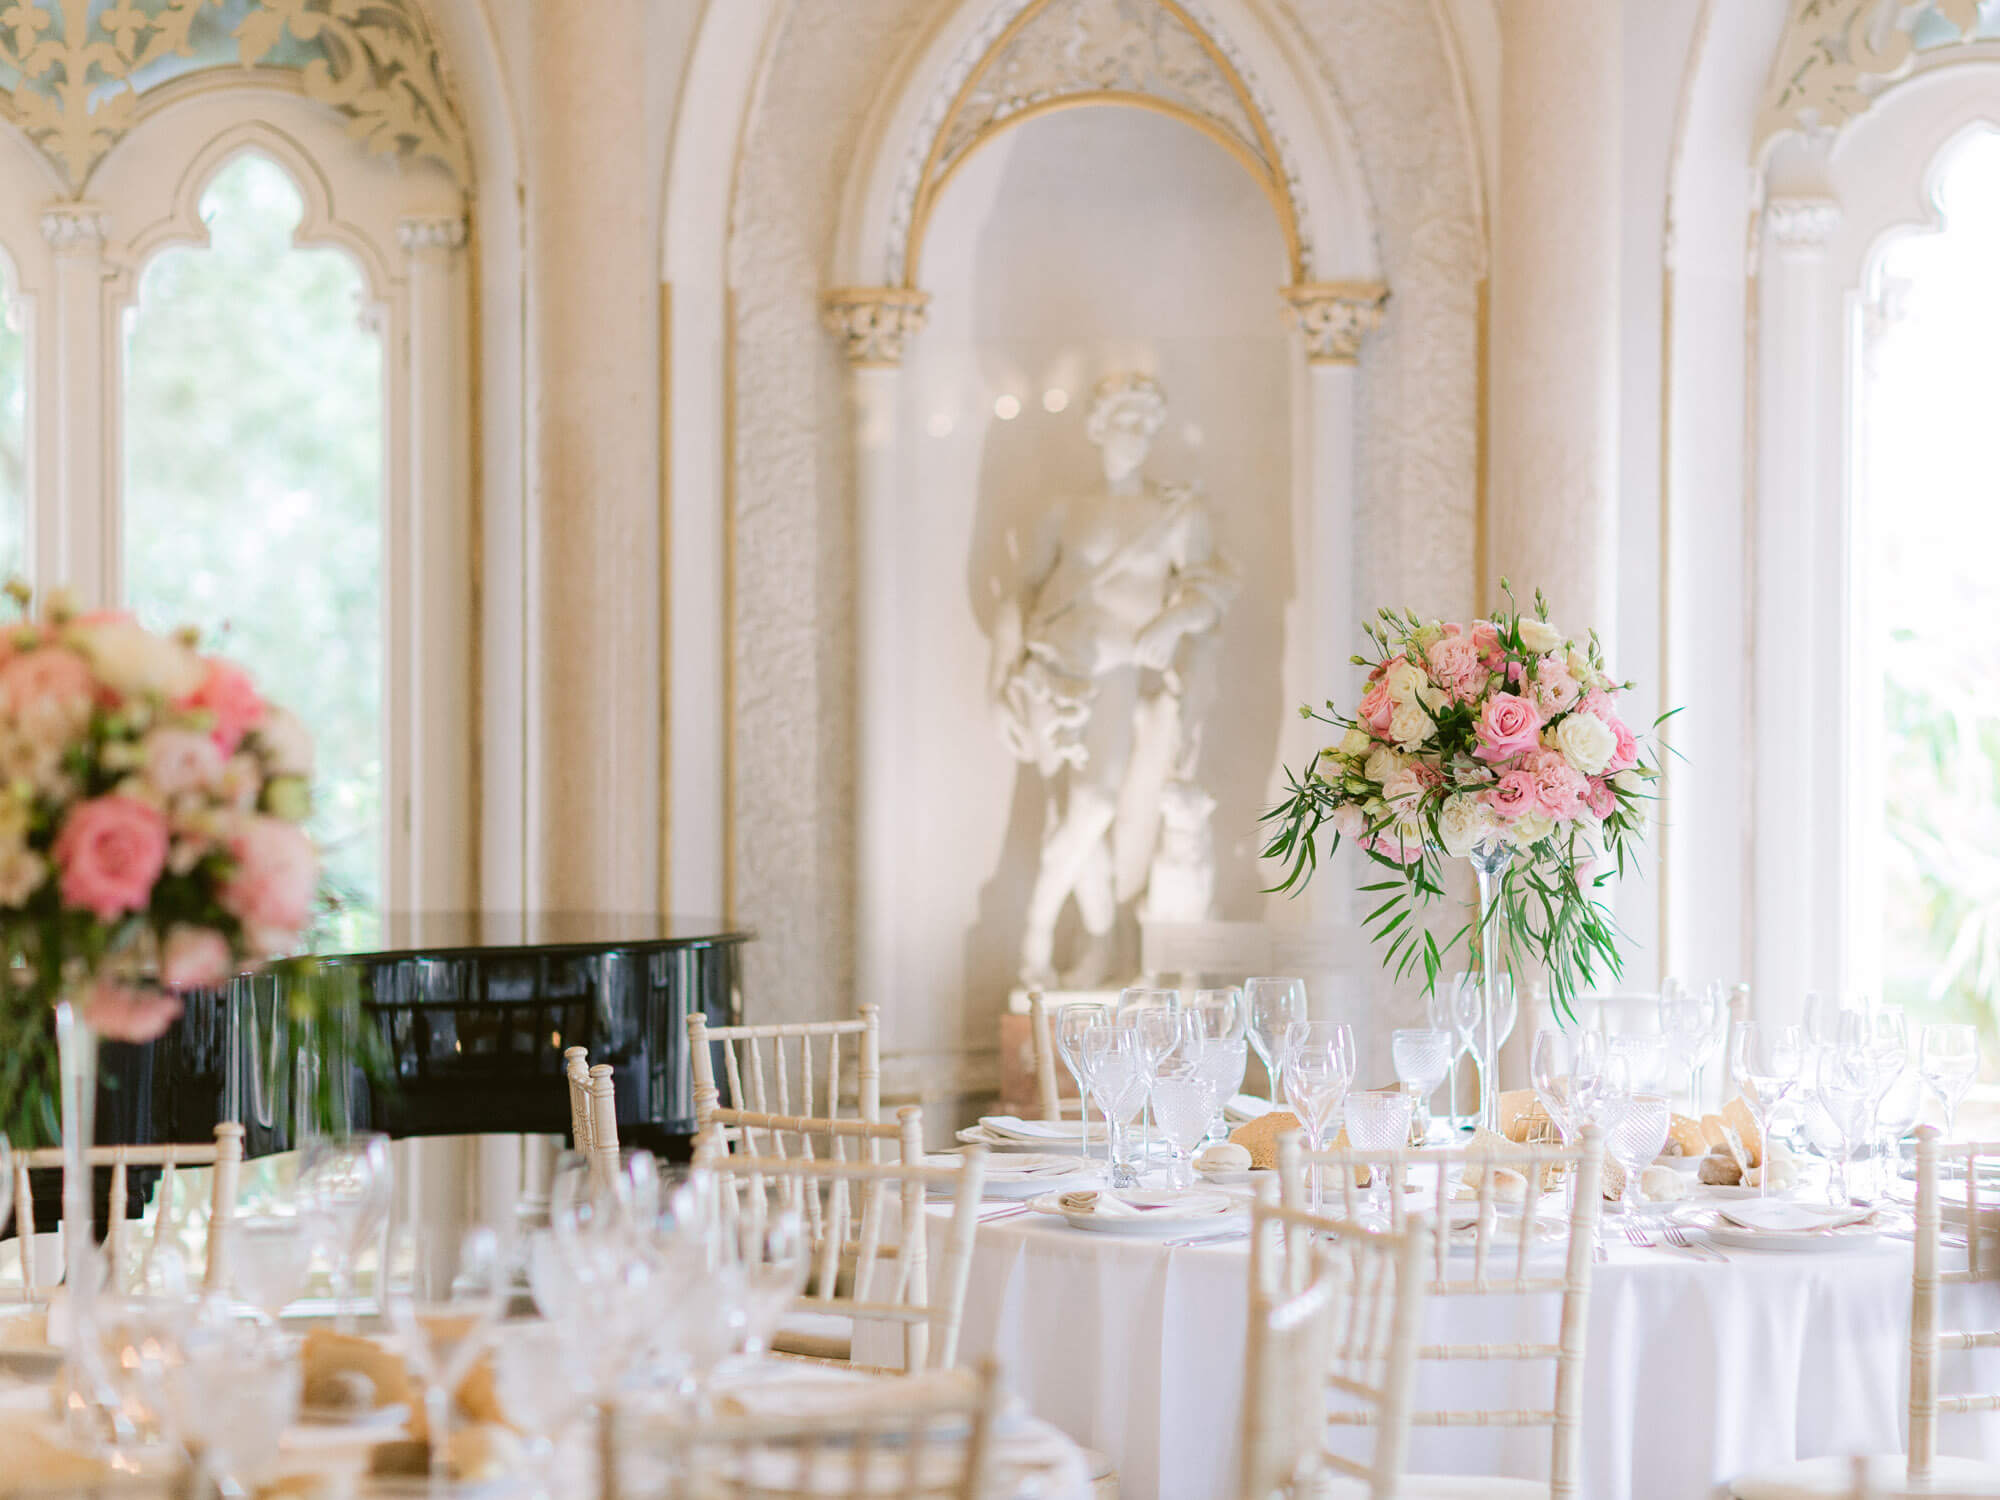 wedding reception in Monserrate Palace hall in Sintra by Portugal Wedding Photographer